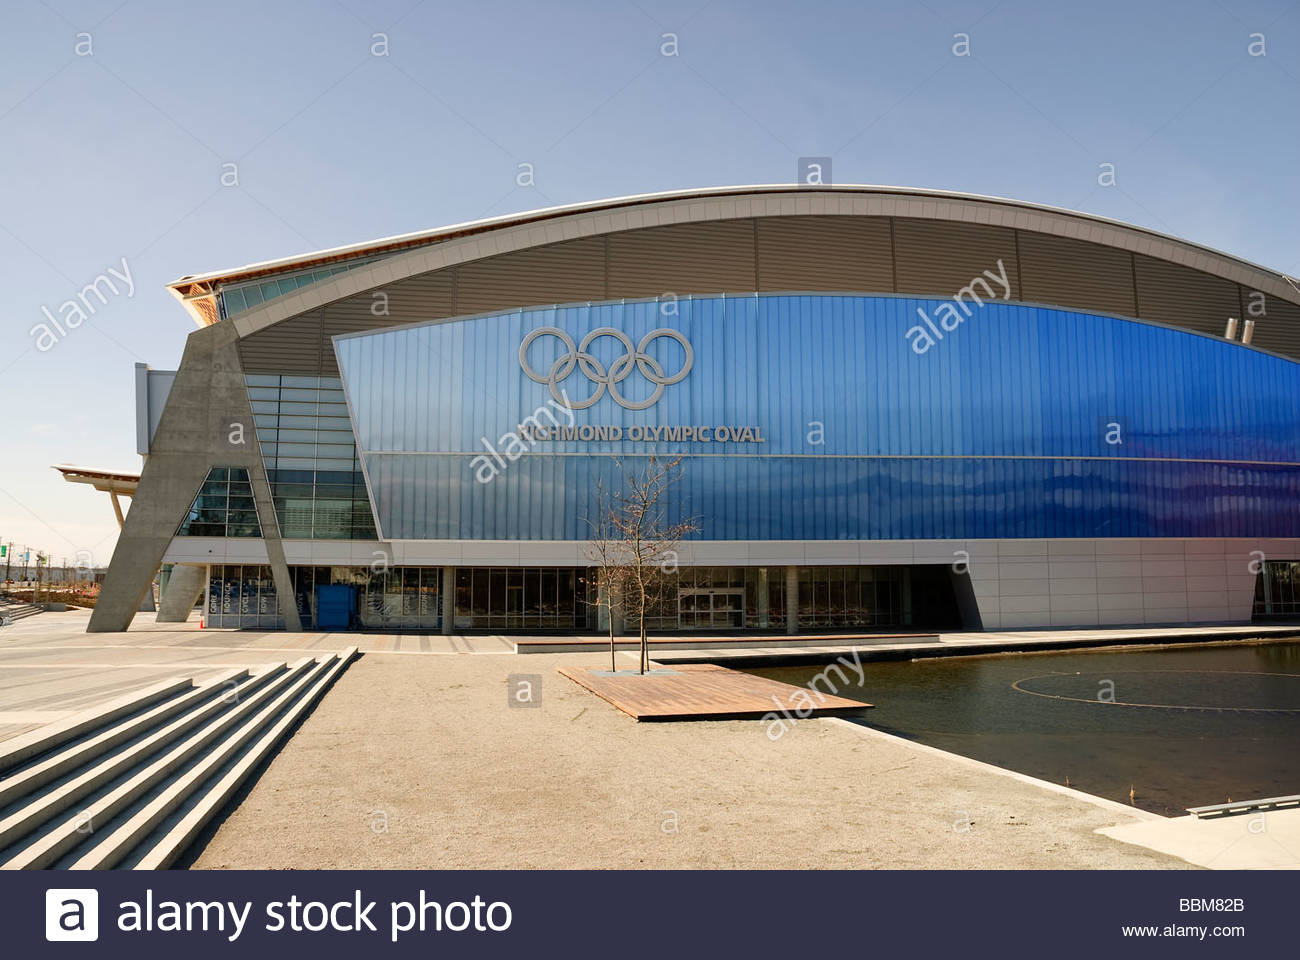 An exterior view of the Richmond Olympic Oval the speed skating venue for the 2010 Olympic Winter Games Stock Photo